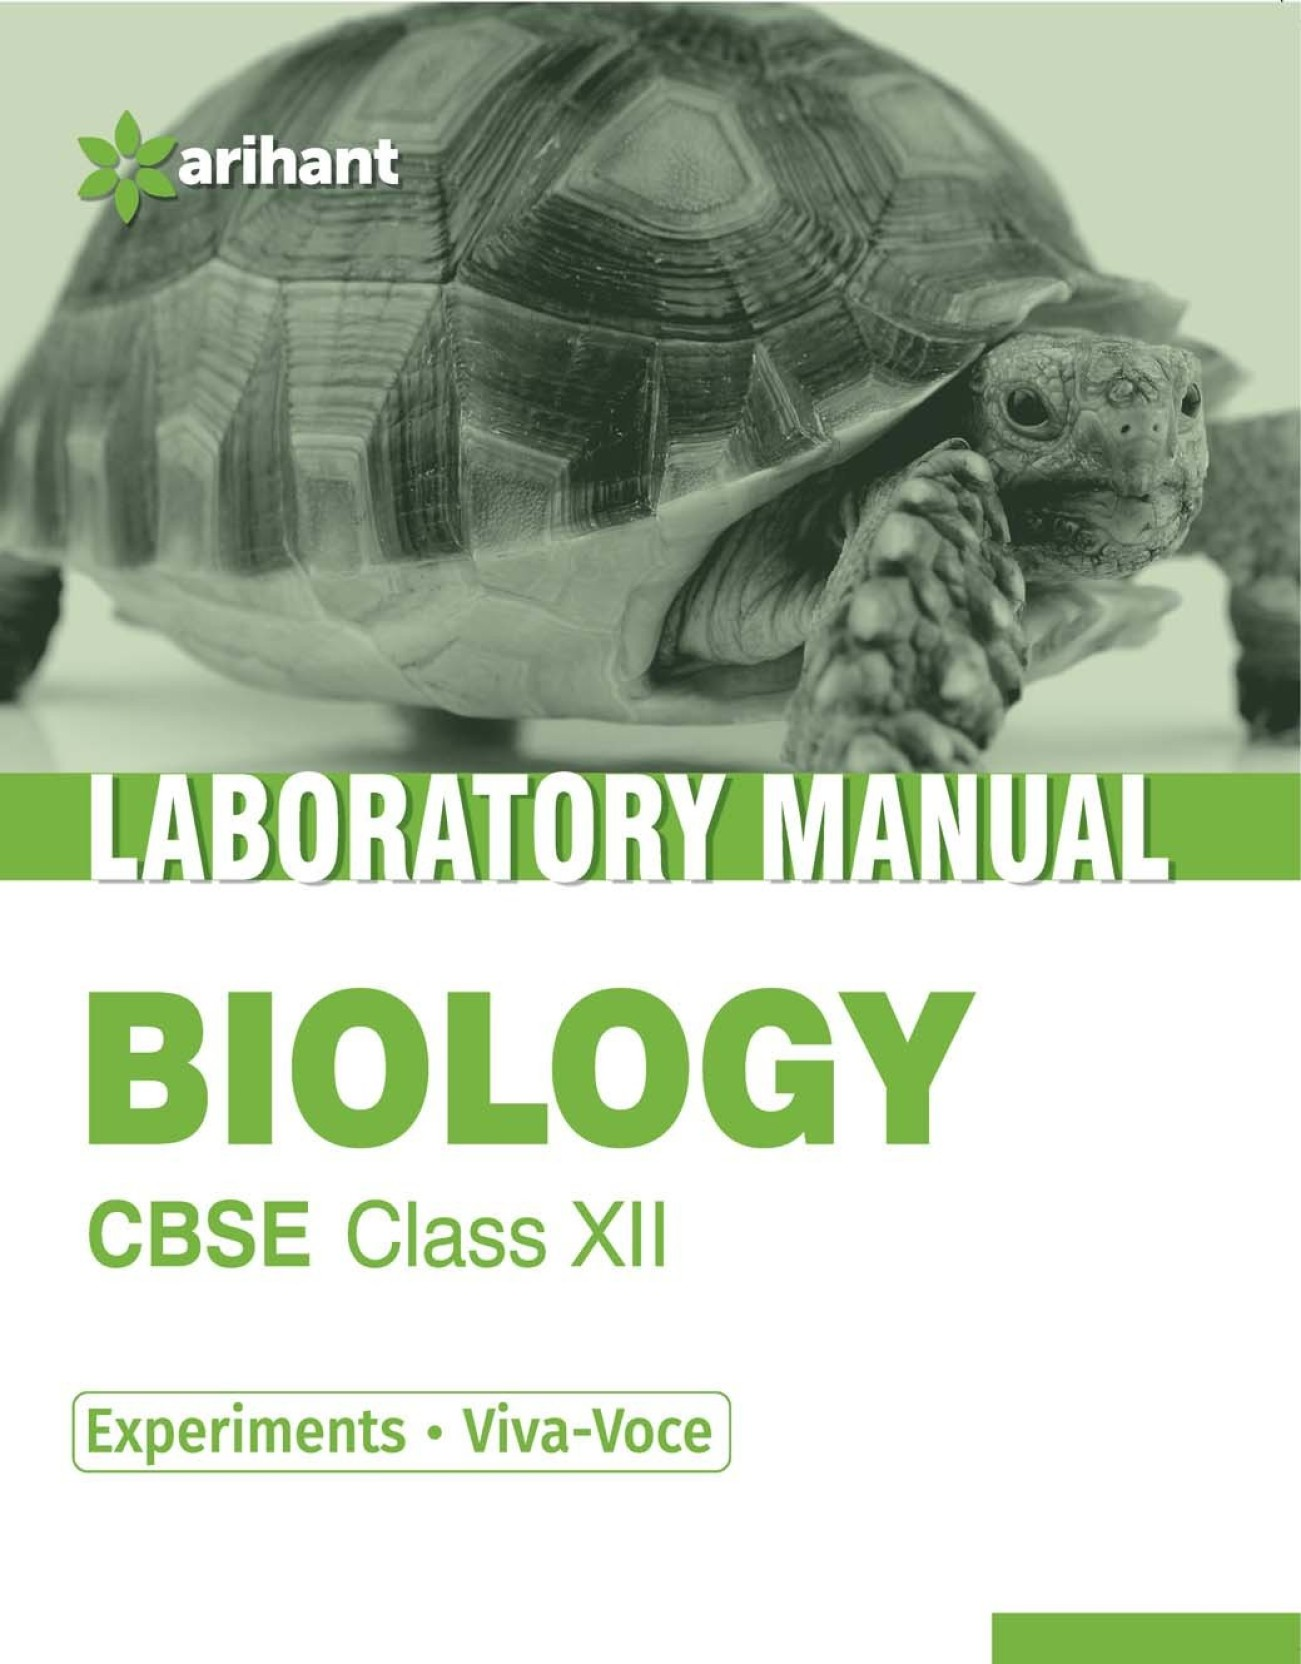 CBSE Laboratory Manual Physics Class 12th  [Experiments|Activities|Projects|Viva-Voce. ADD TO CART